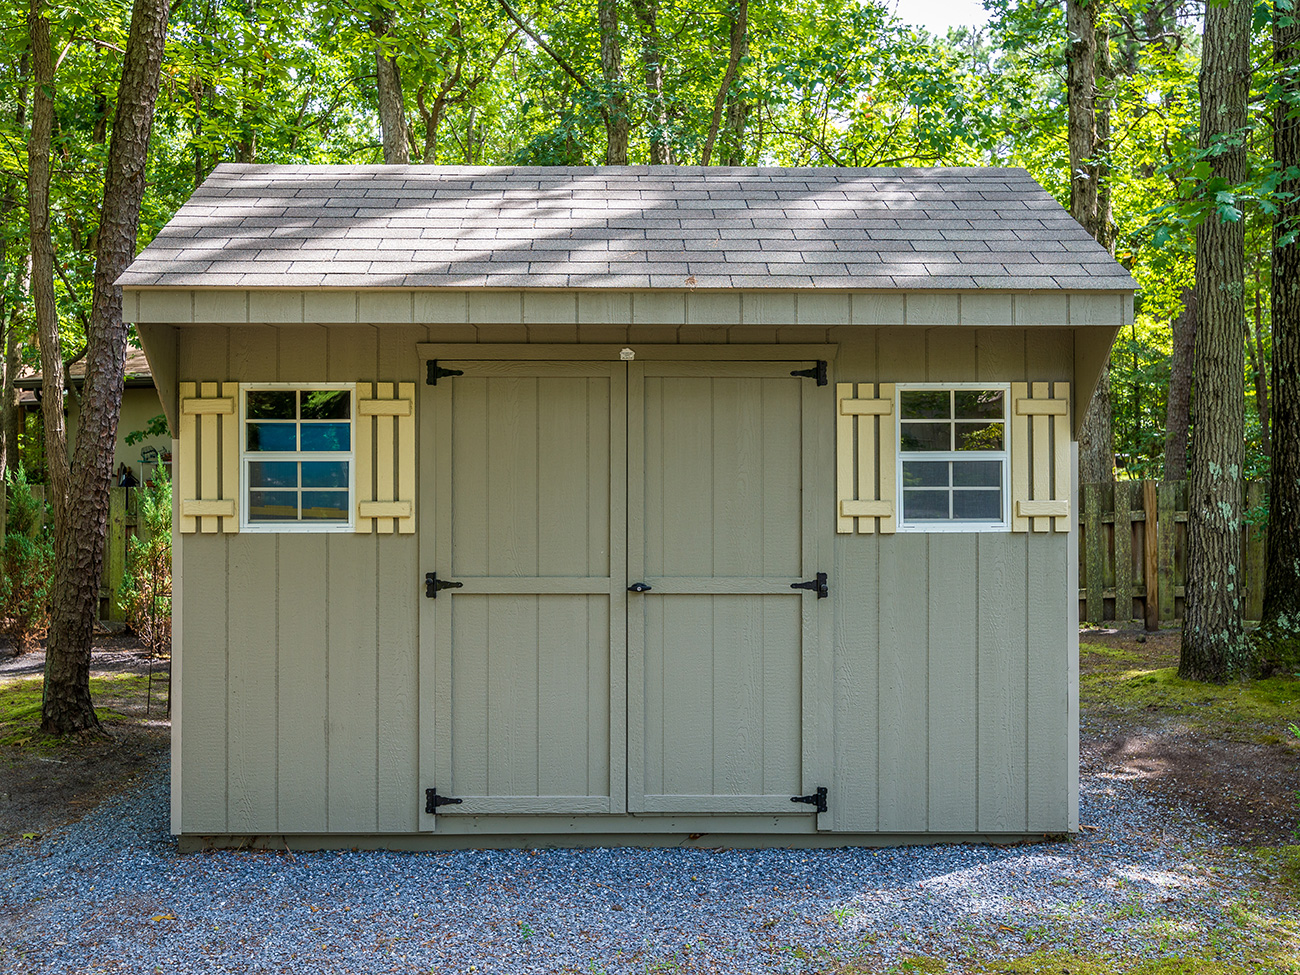 Green Backyard Storage Shed with Shutters